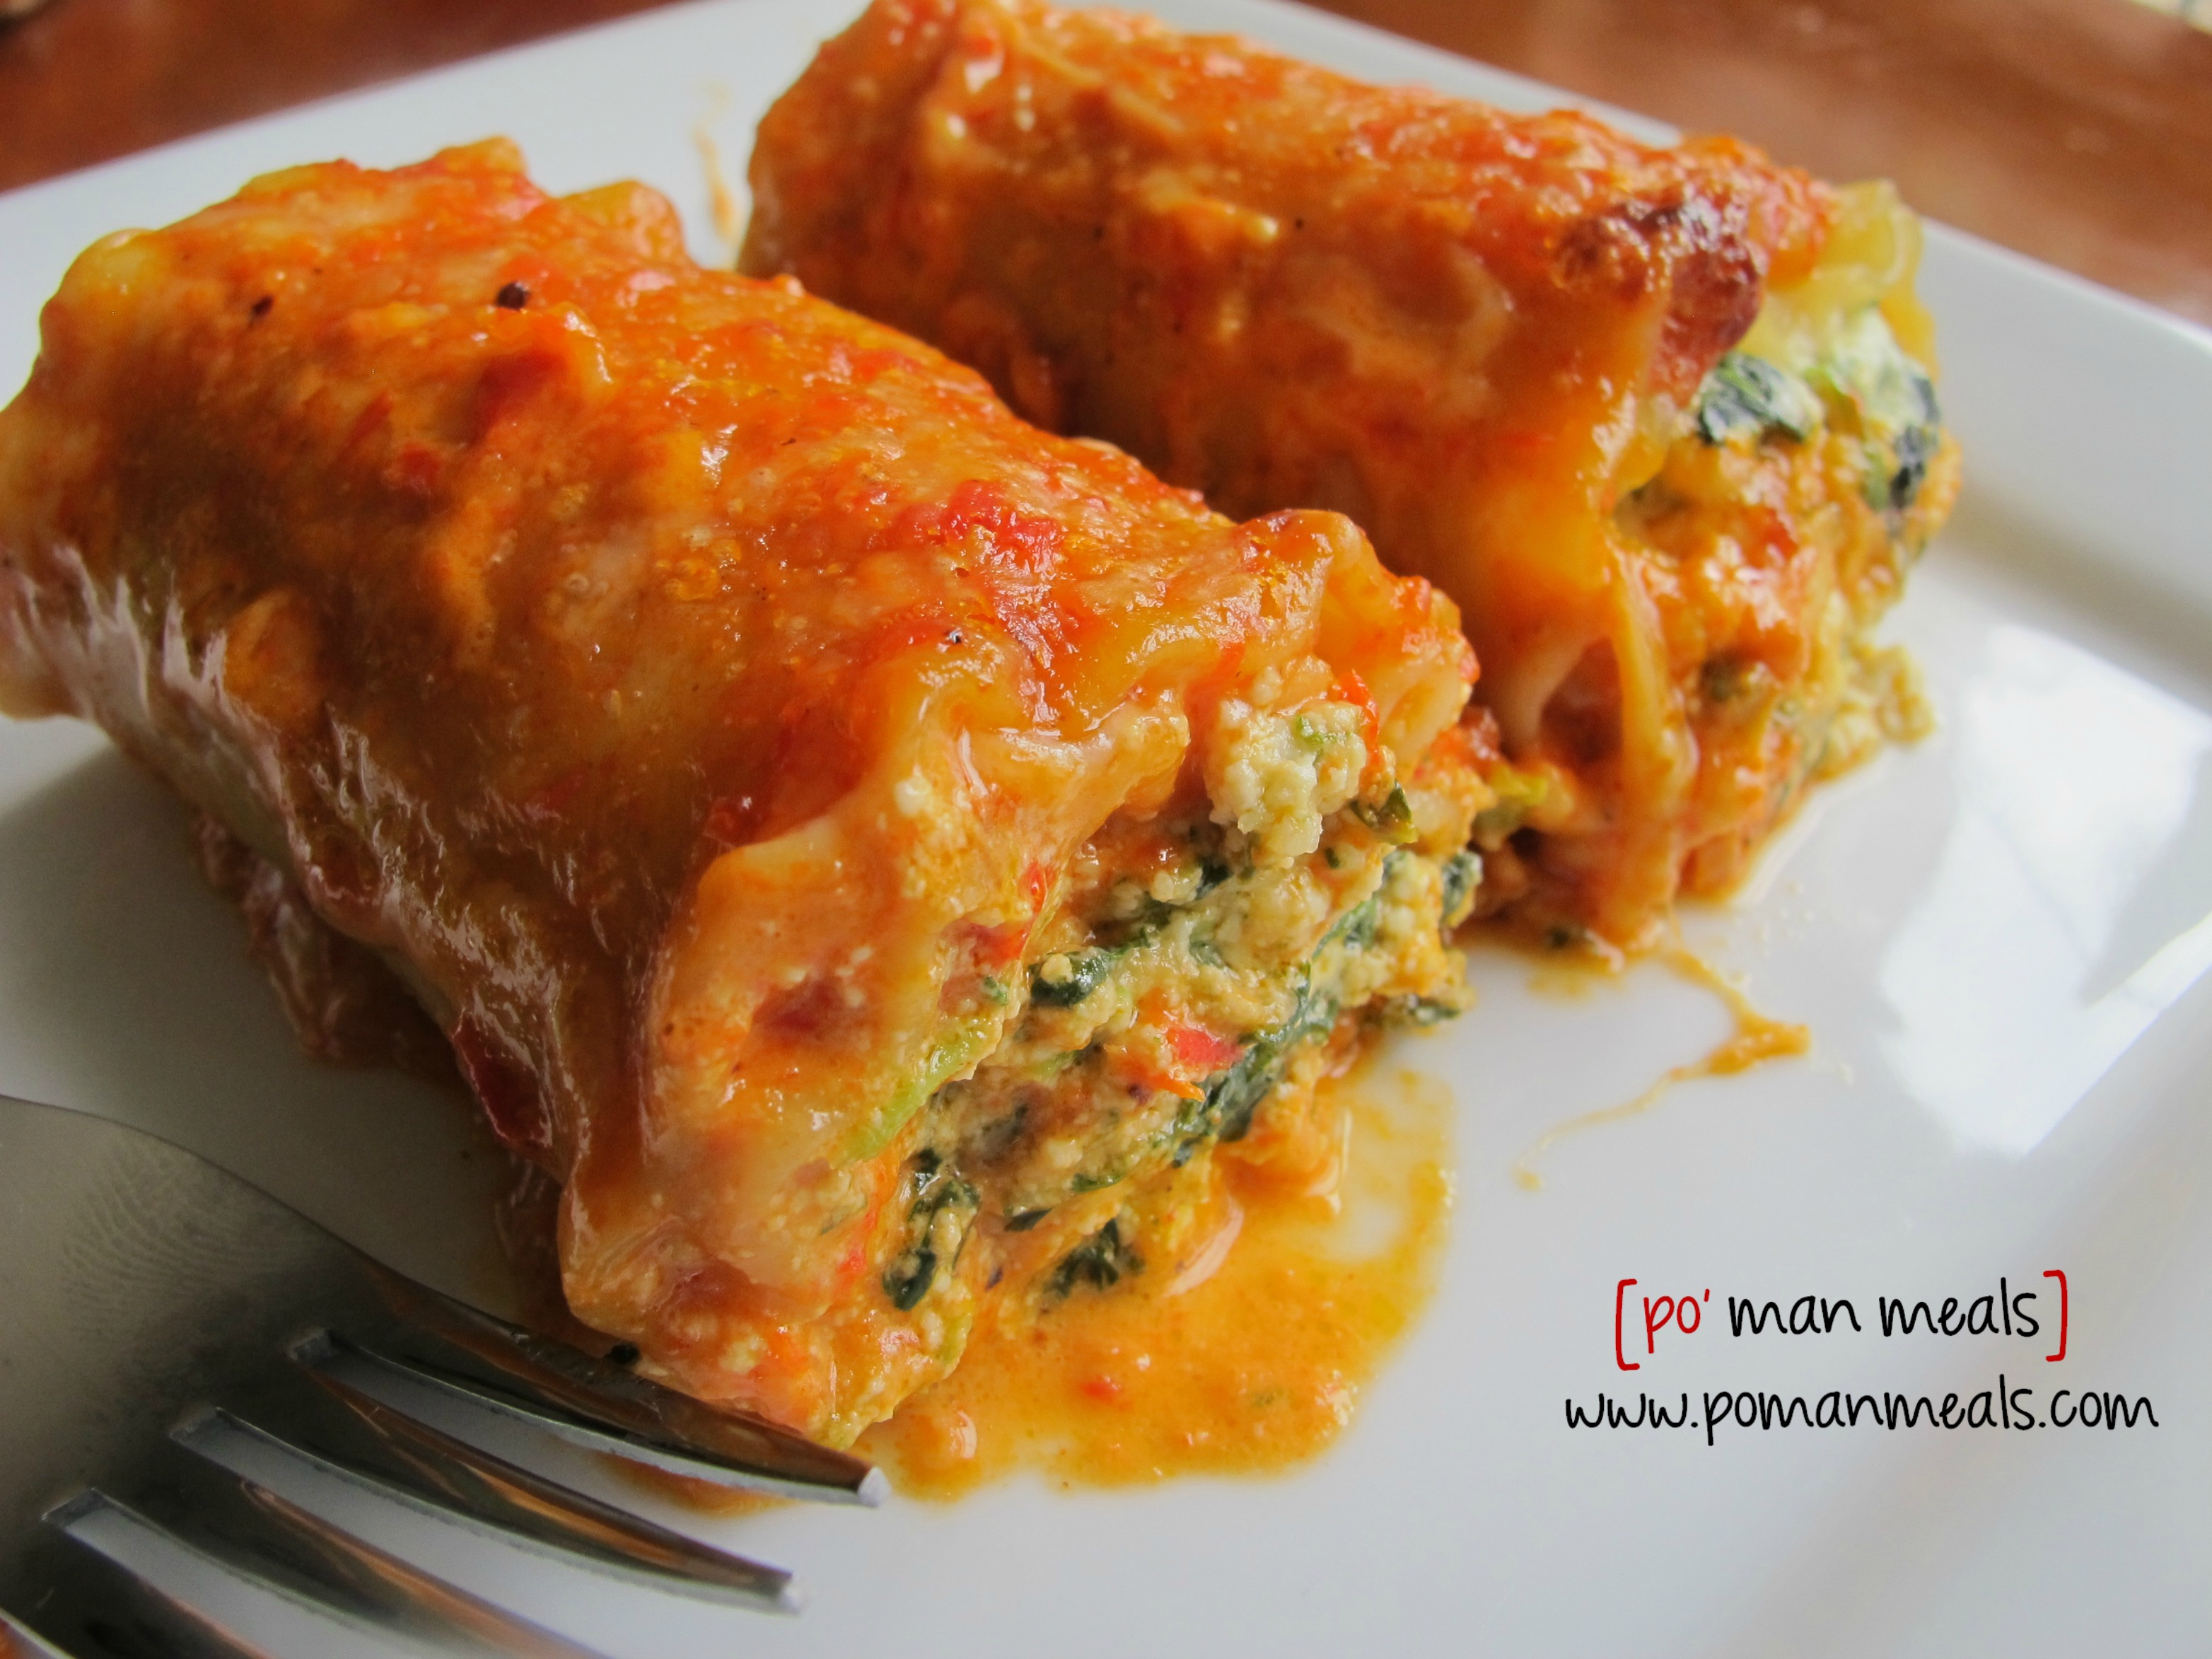 po' man meals - spinach lasagna rolls with roasted red bell pepper ...